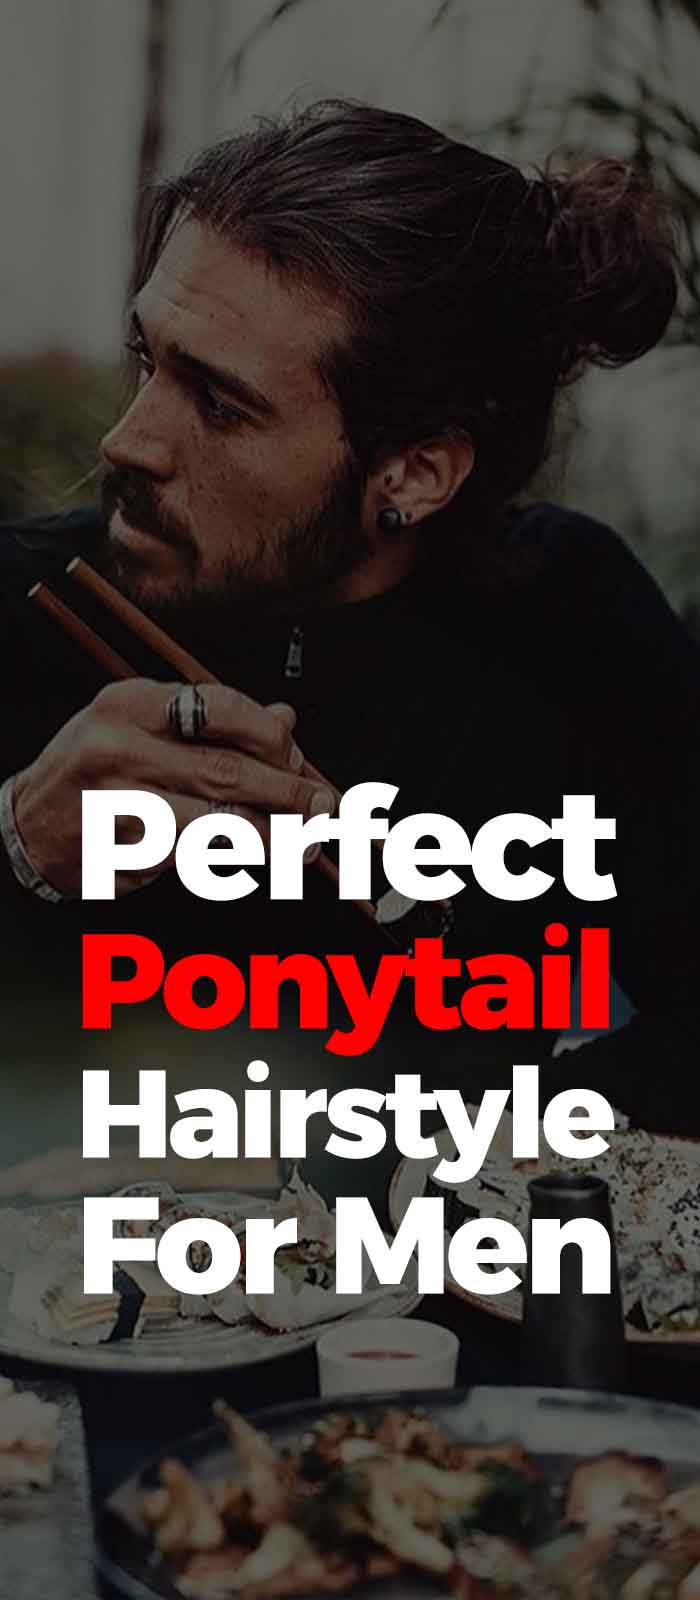 Ponytail Hairstyle For Men!